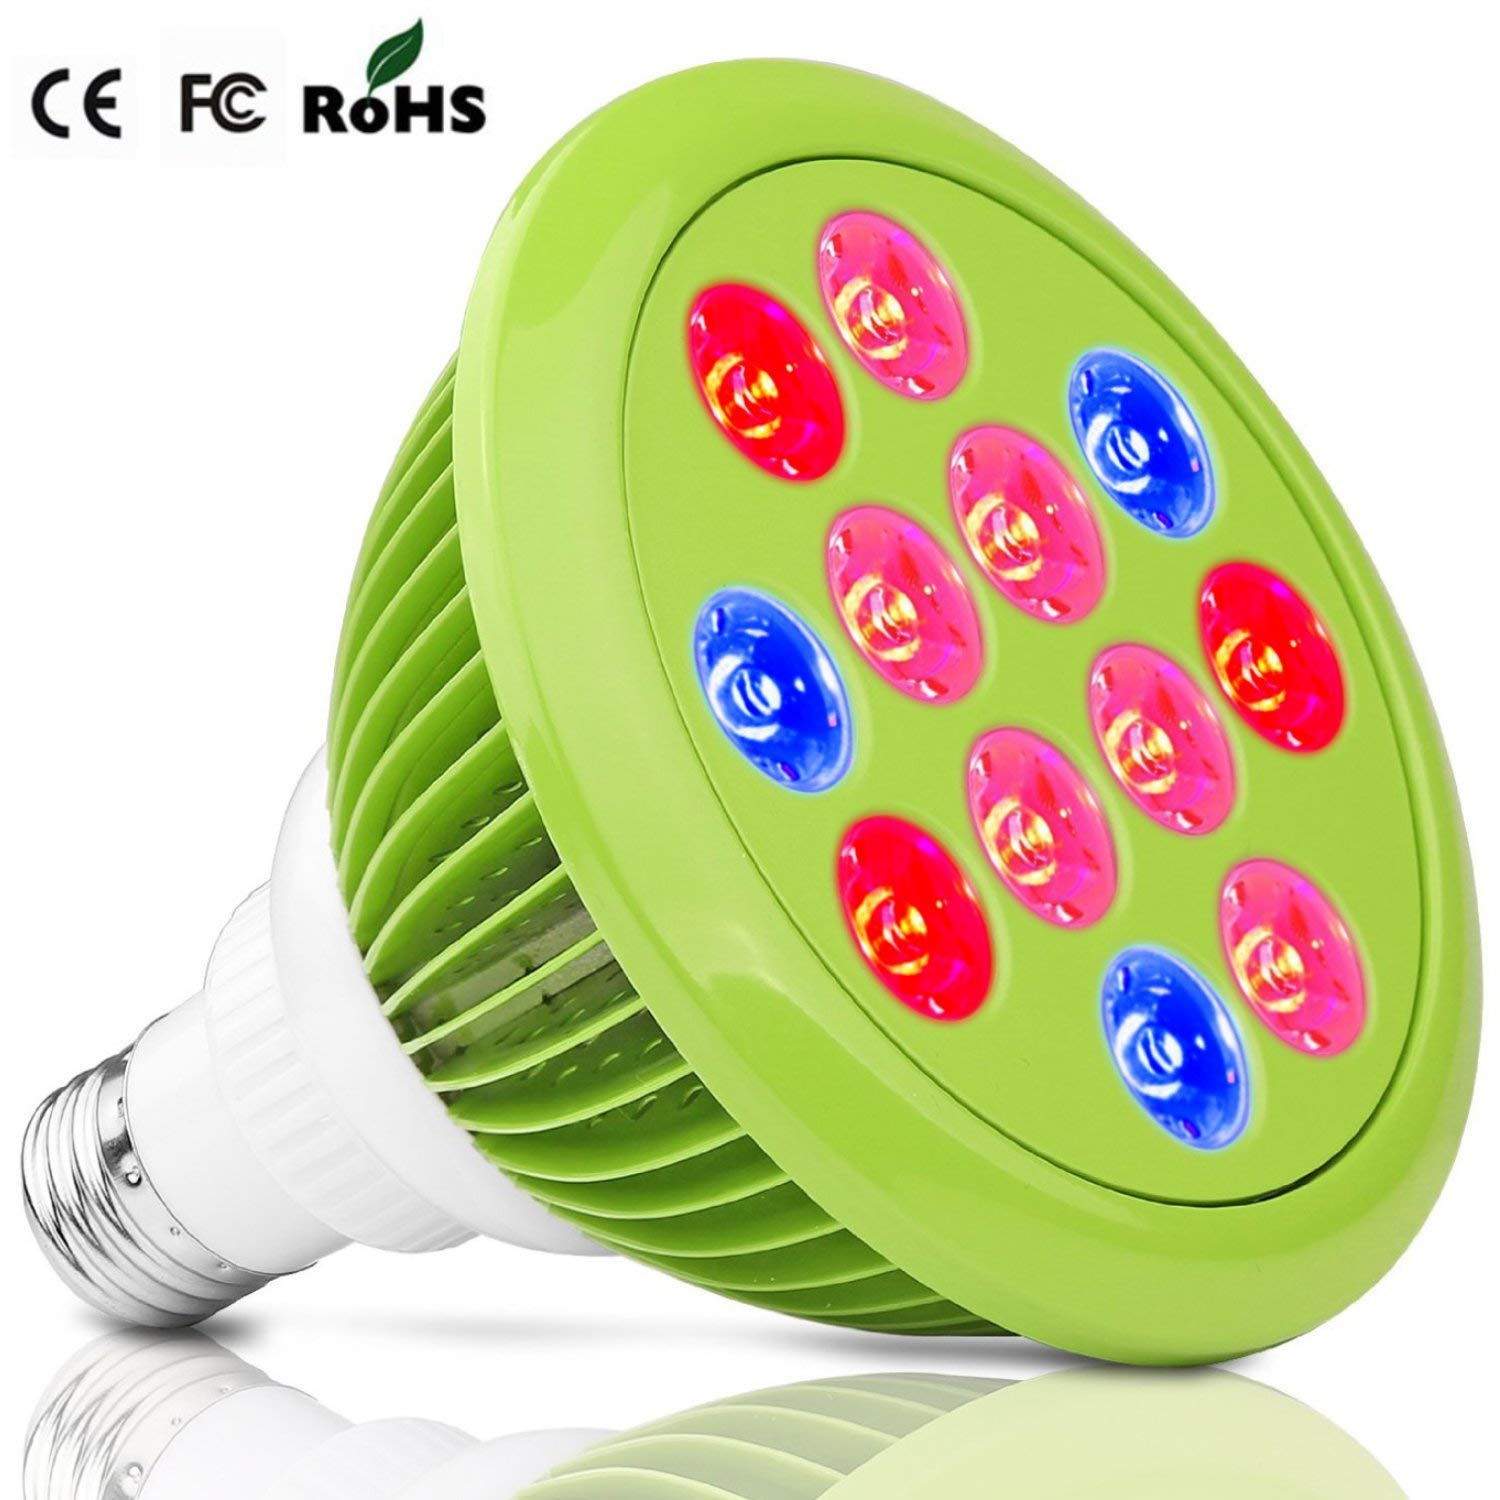 LED Grow Light 24W Plant Grow Lights E27 Growing Bulbs For Garden Greenhouse and Hydroponic Full Spectrum Growing Lamps 3 Bands Growing Combination (660nm and 630nm Red and 460nm Blue) [Energy Class A+++] IDB- Light Future-Uk